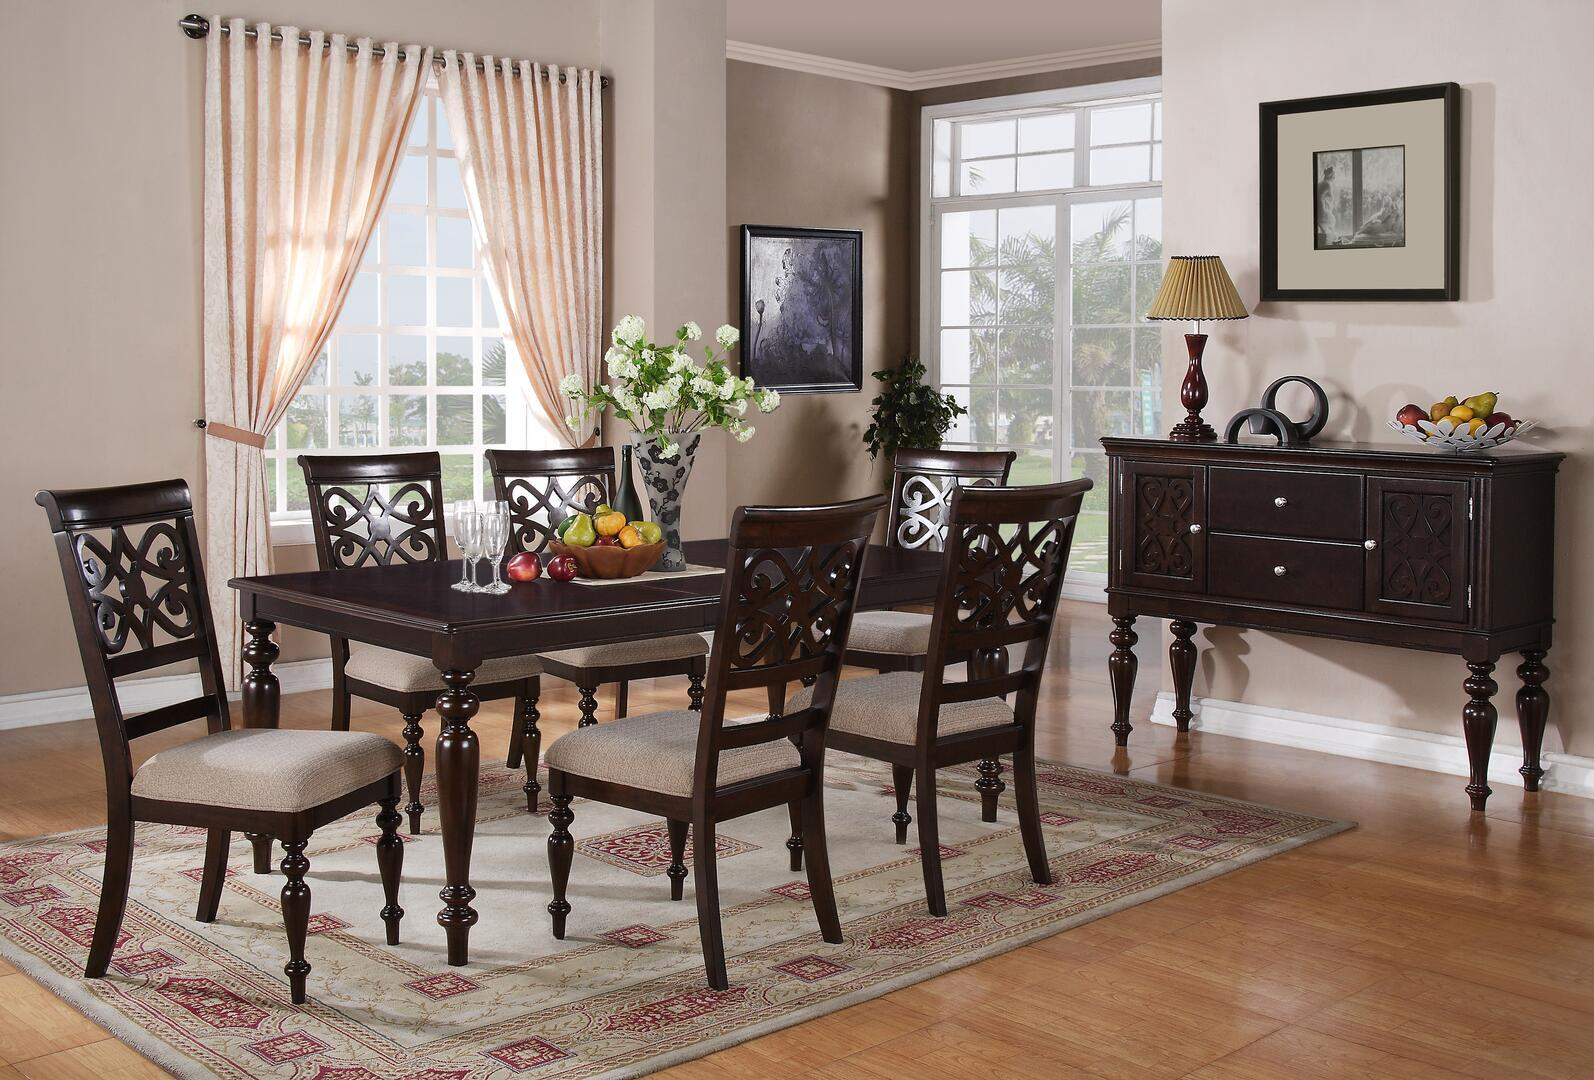 Transitional Cherry Fabric Dining Room Set 8 pcs Cosmos Furniture Zora-Set-8